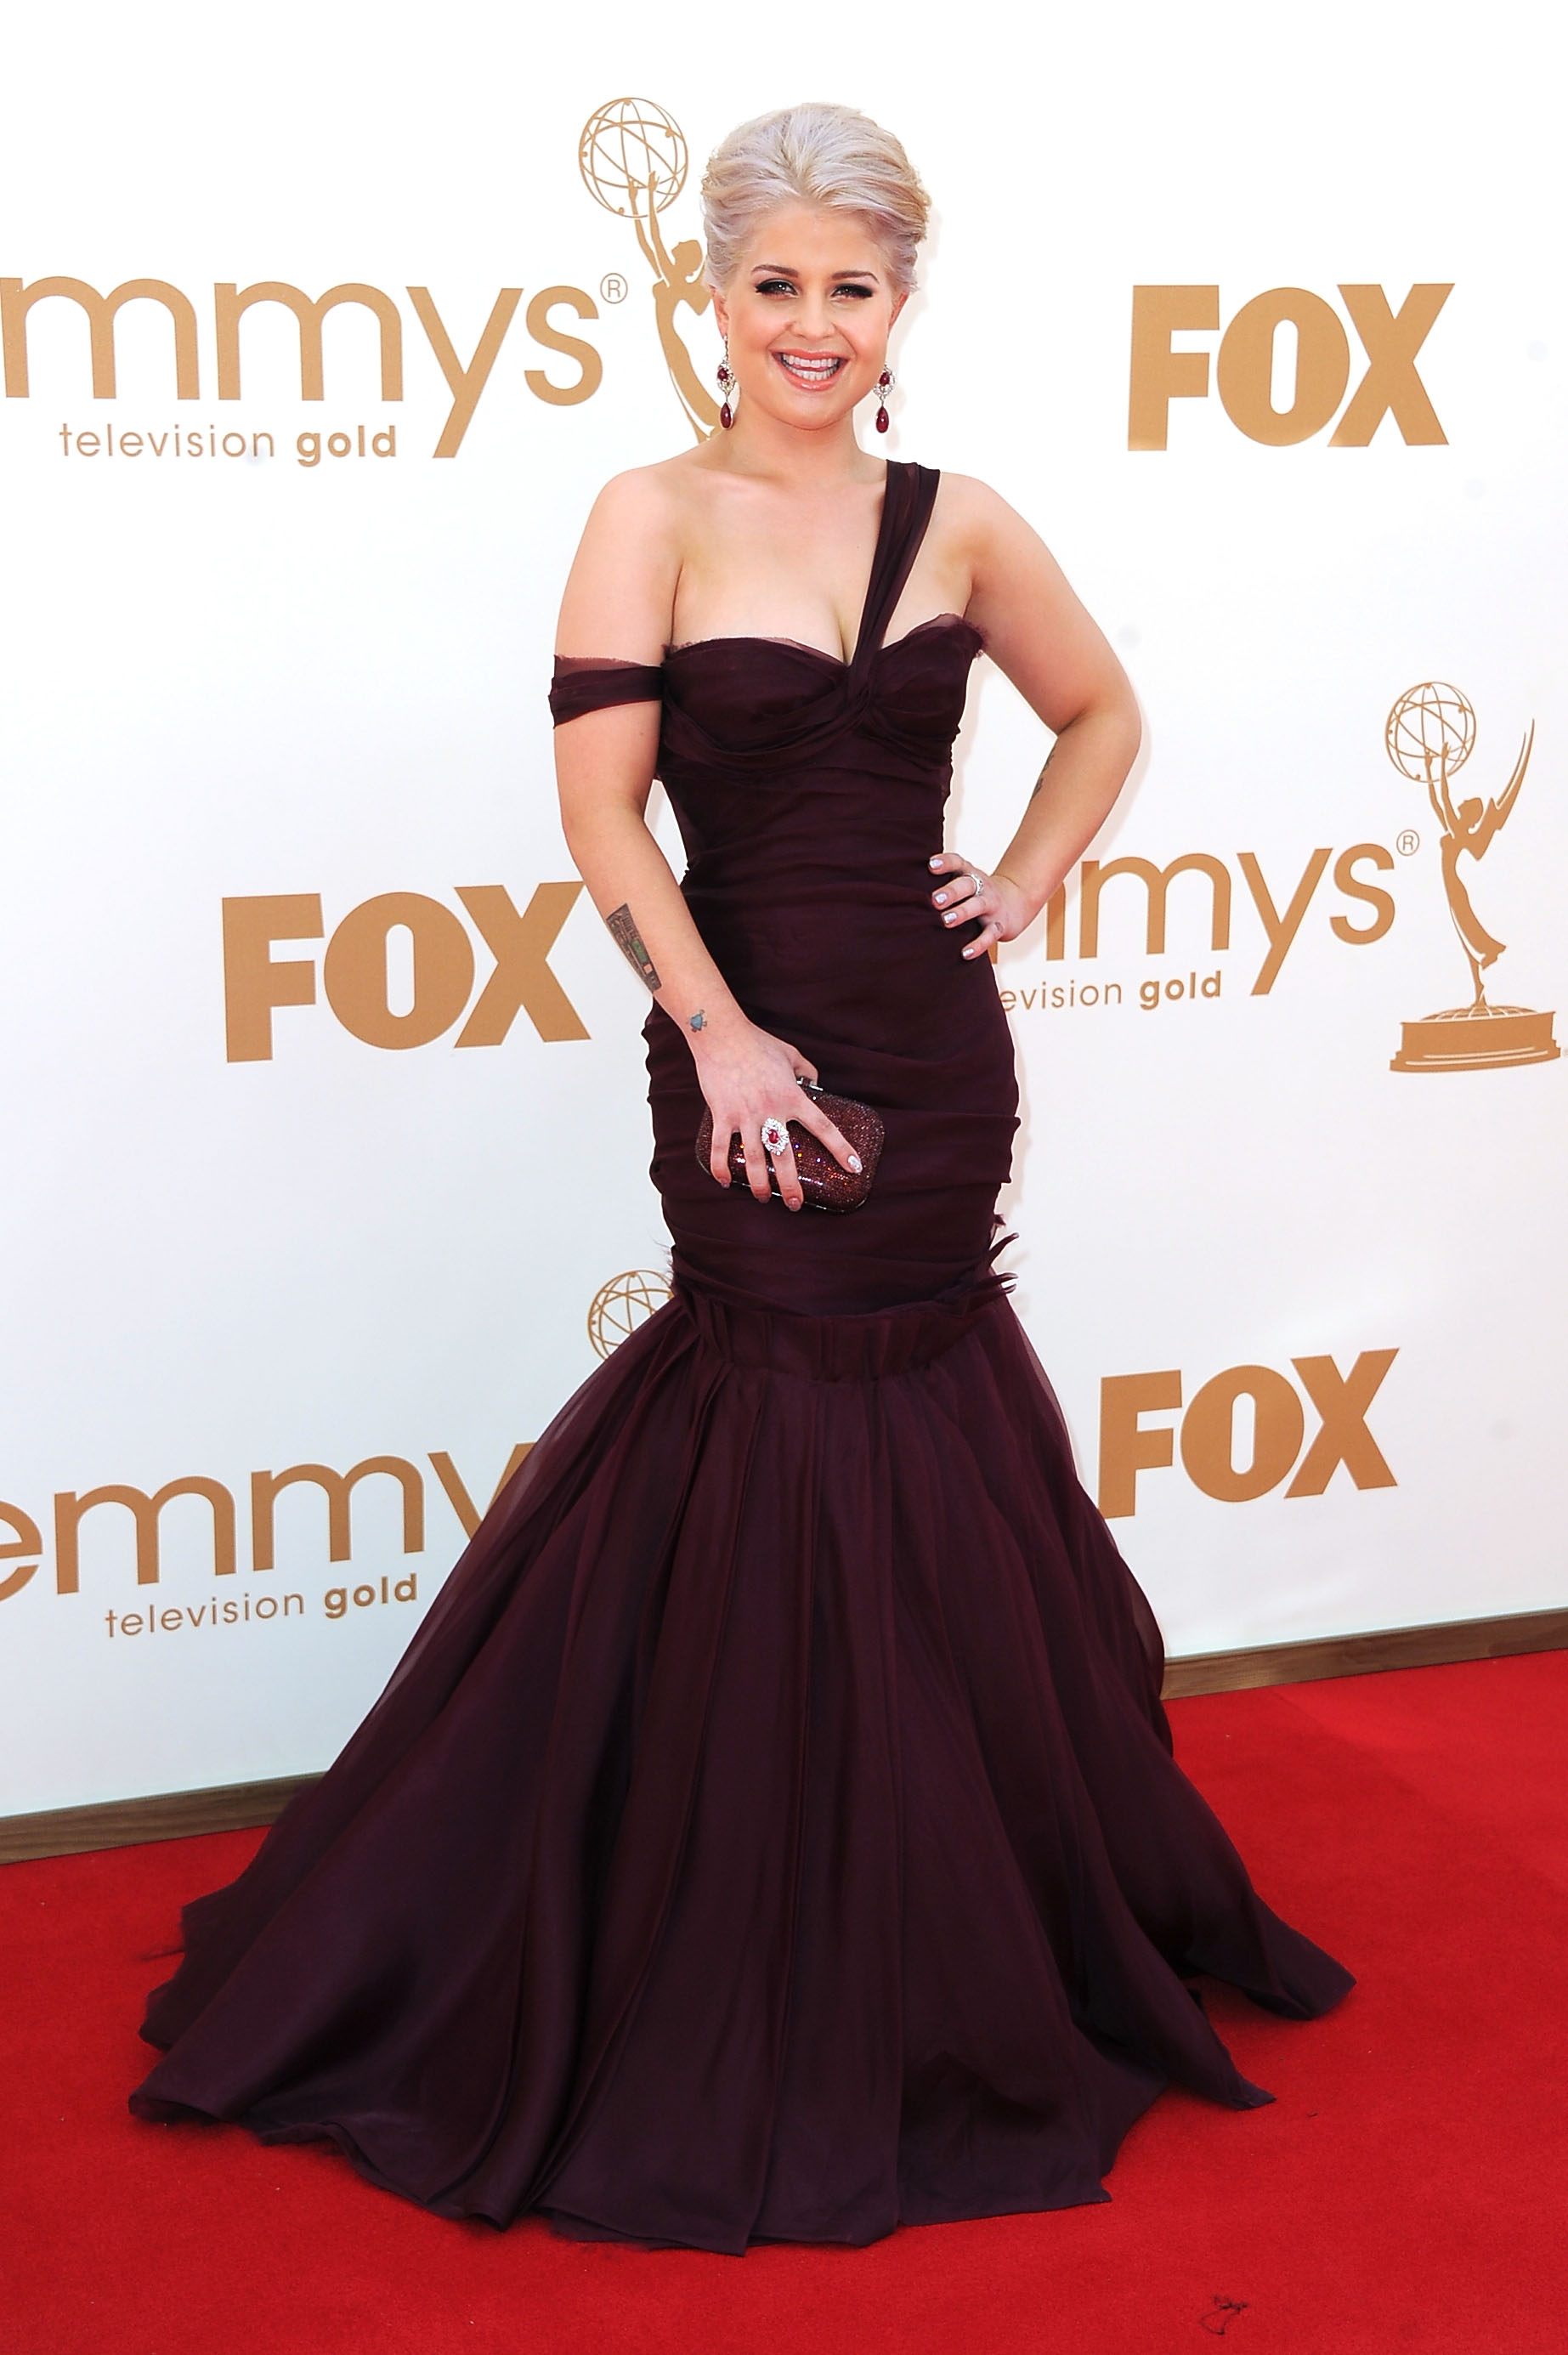 Kelly Osbourne in J. Mendel at the Emmys.